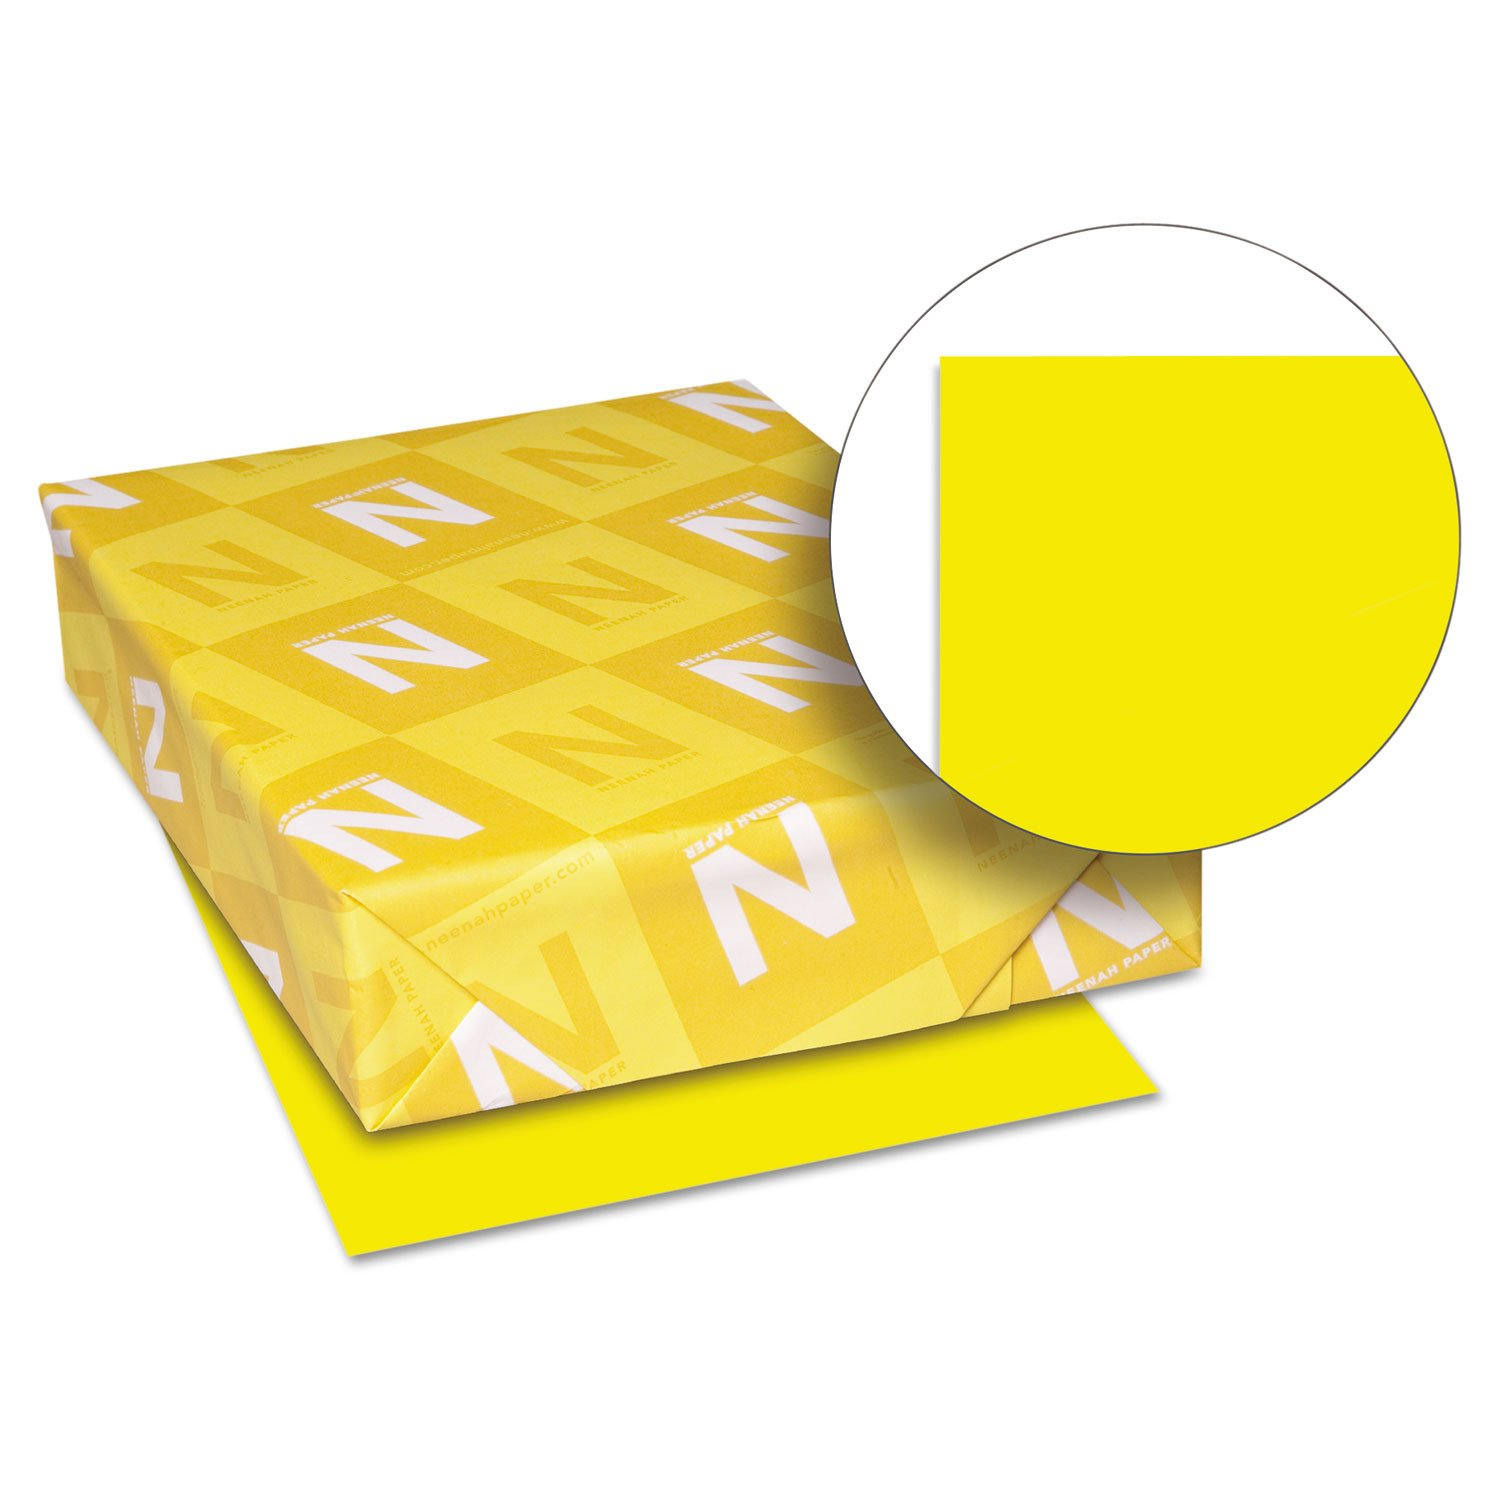 Neenah Paper 22731 Color Cardstock, 65lb, 8 1/2 x 11, Solar Yellow, 250 Sheets